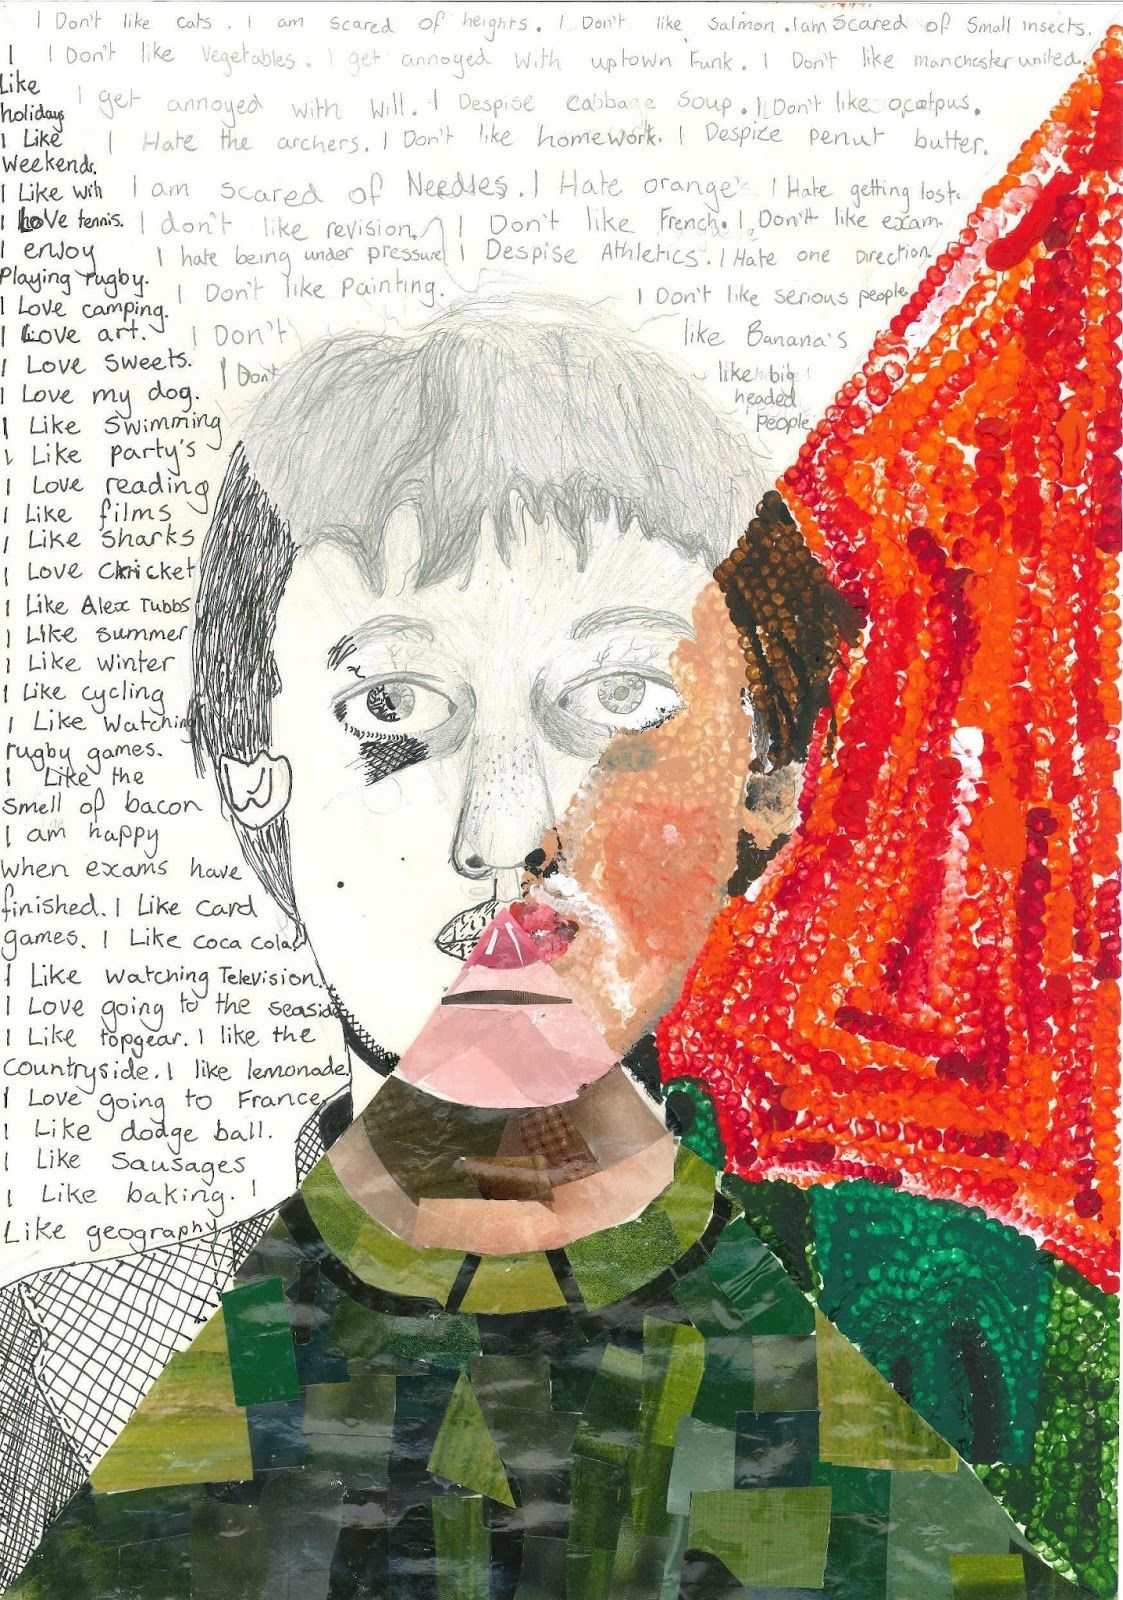 Year 7 Student Mixed Media Self Portrait In 2019 Art Self